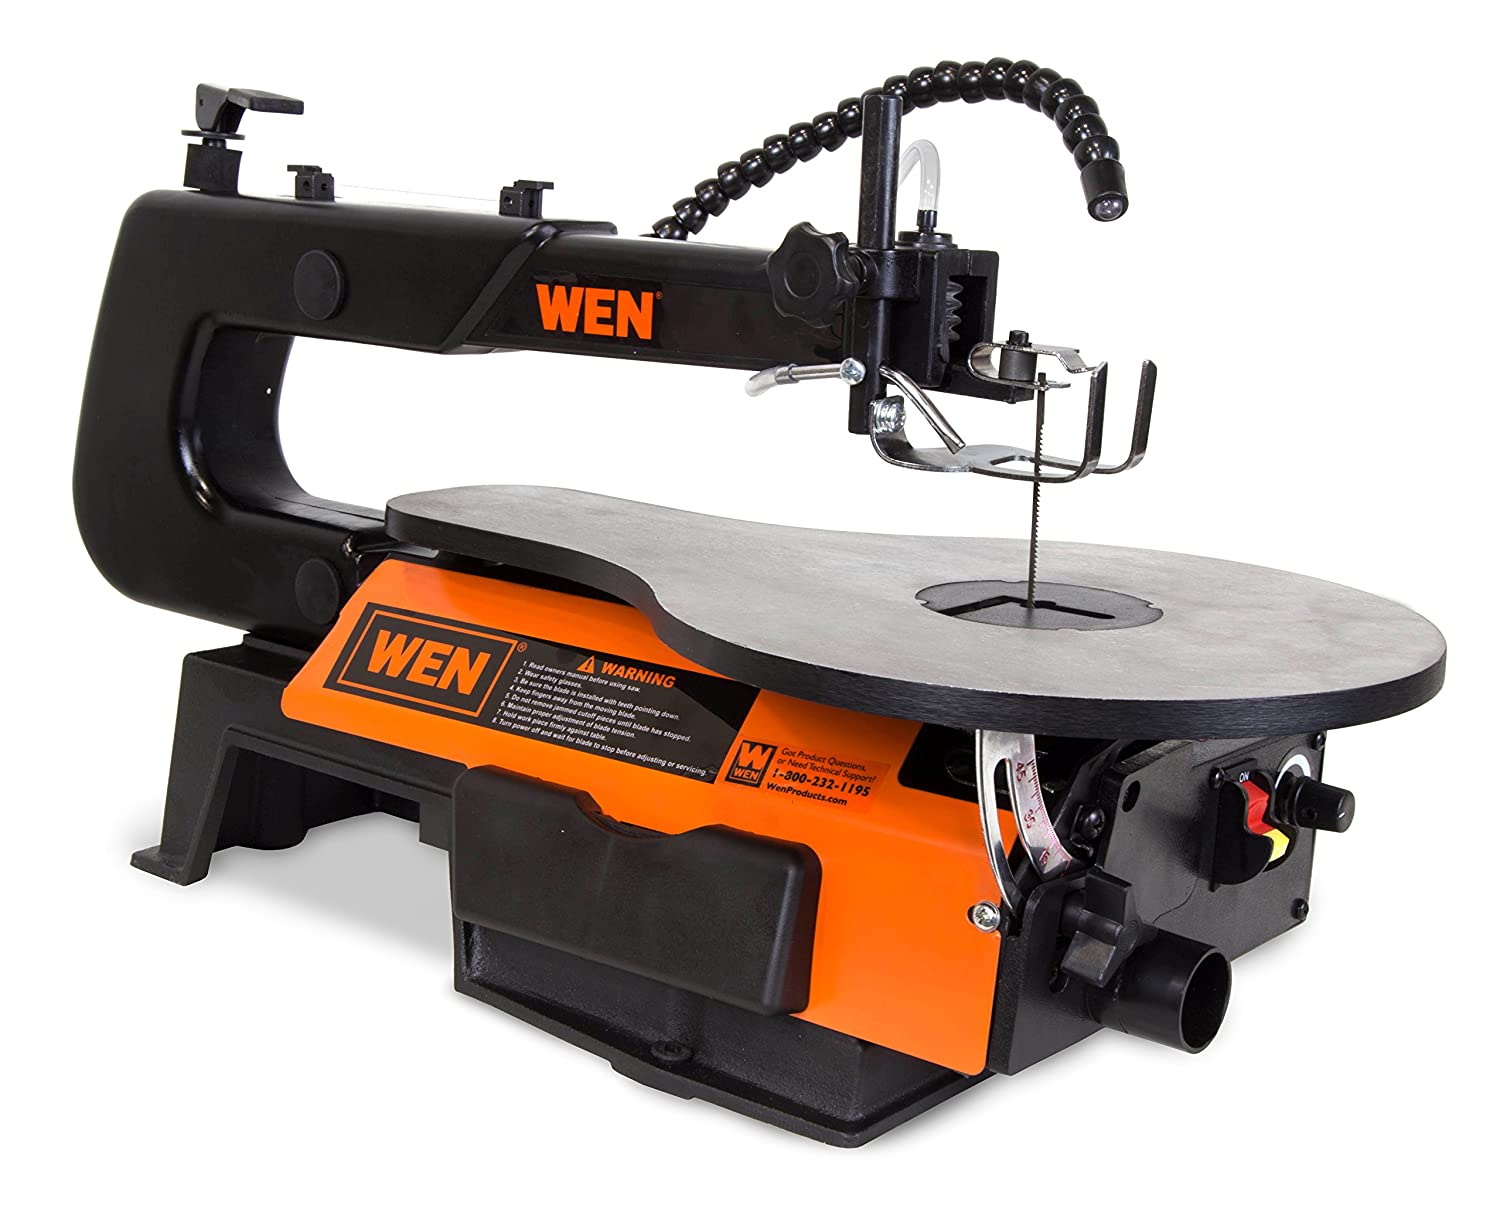 WEN 3920 Saw Review & Ratings